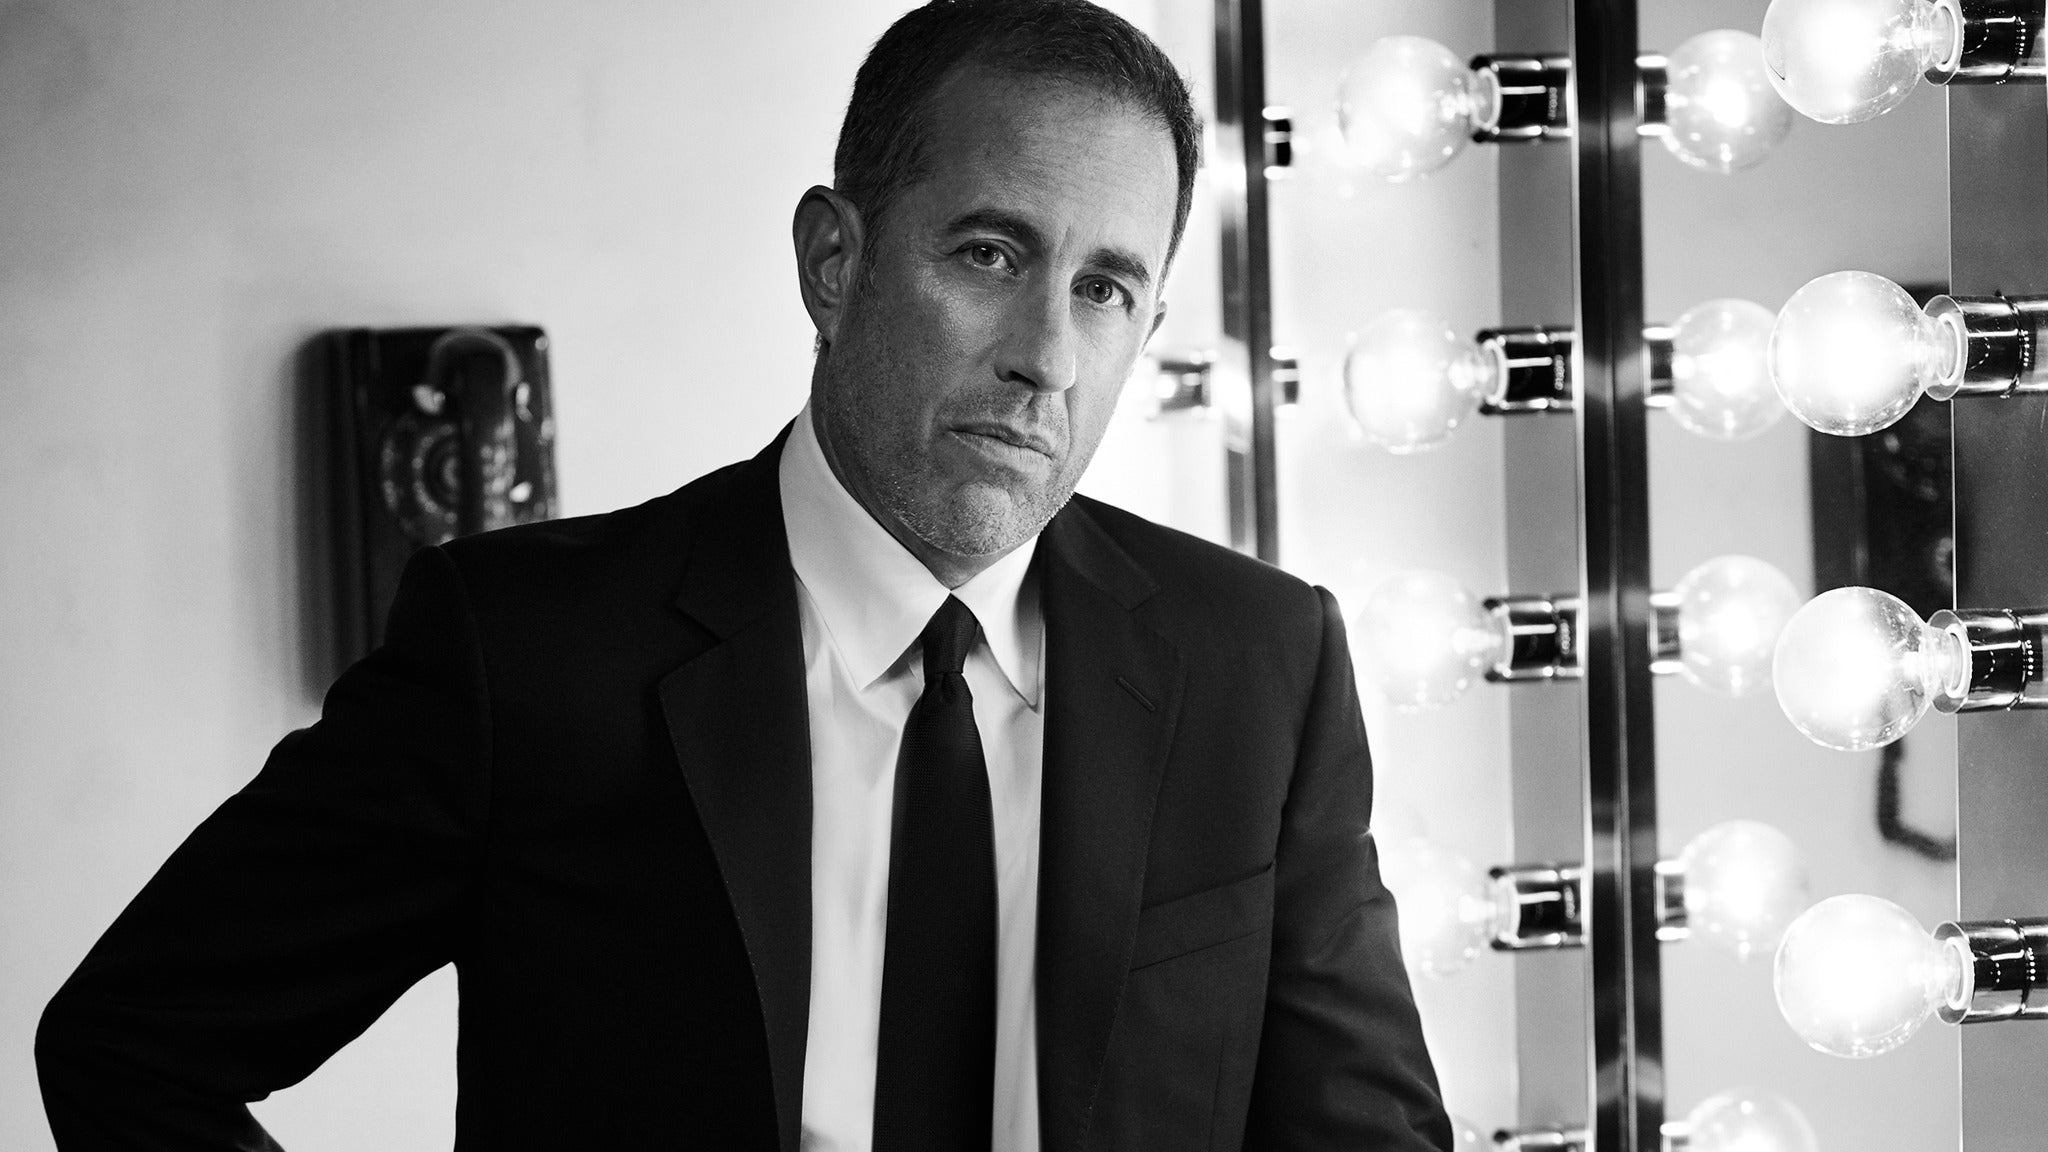 Jerry Seinfeld at Johnny Mercer Theatre